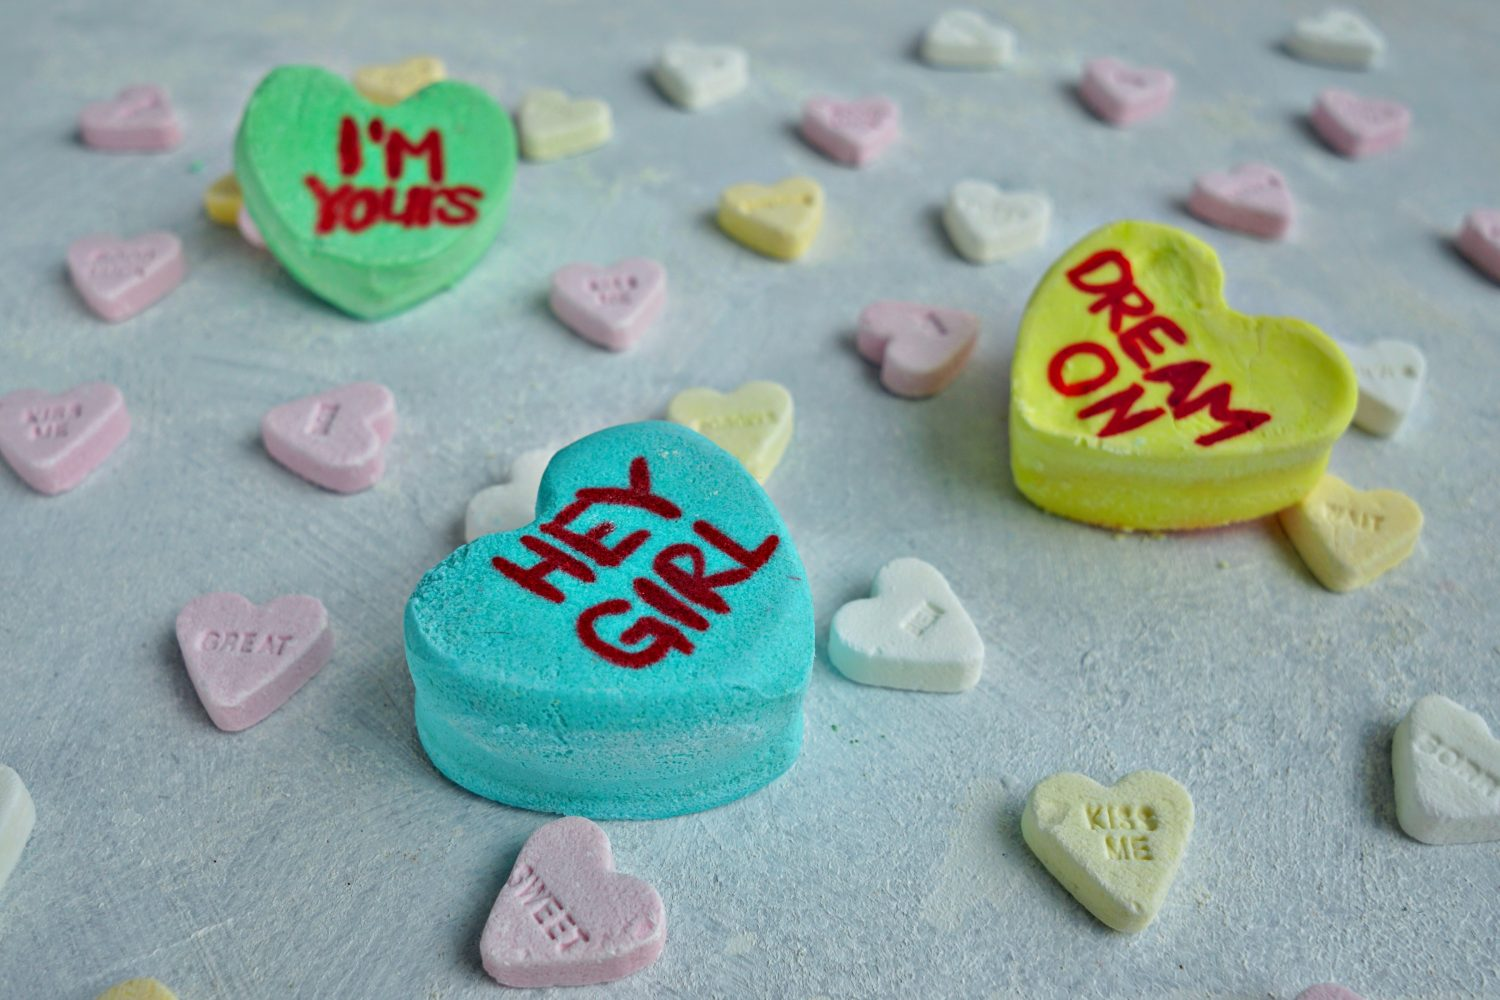 Easy Bubble Bath Bars DIY tutorial from The Makeup Dummy #diygifts #valentinesday